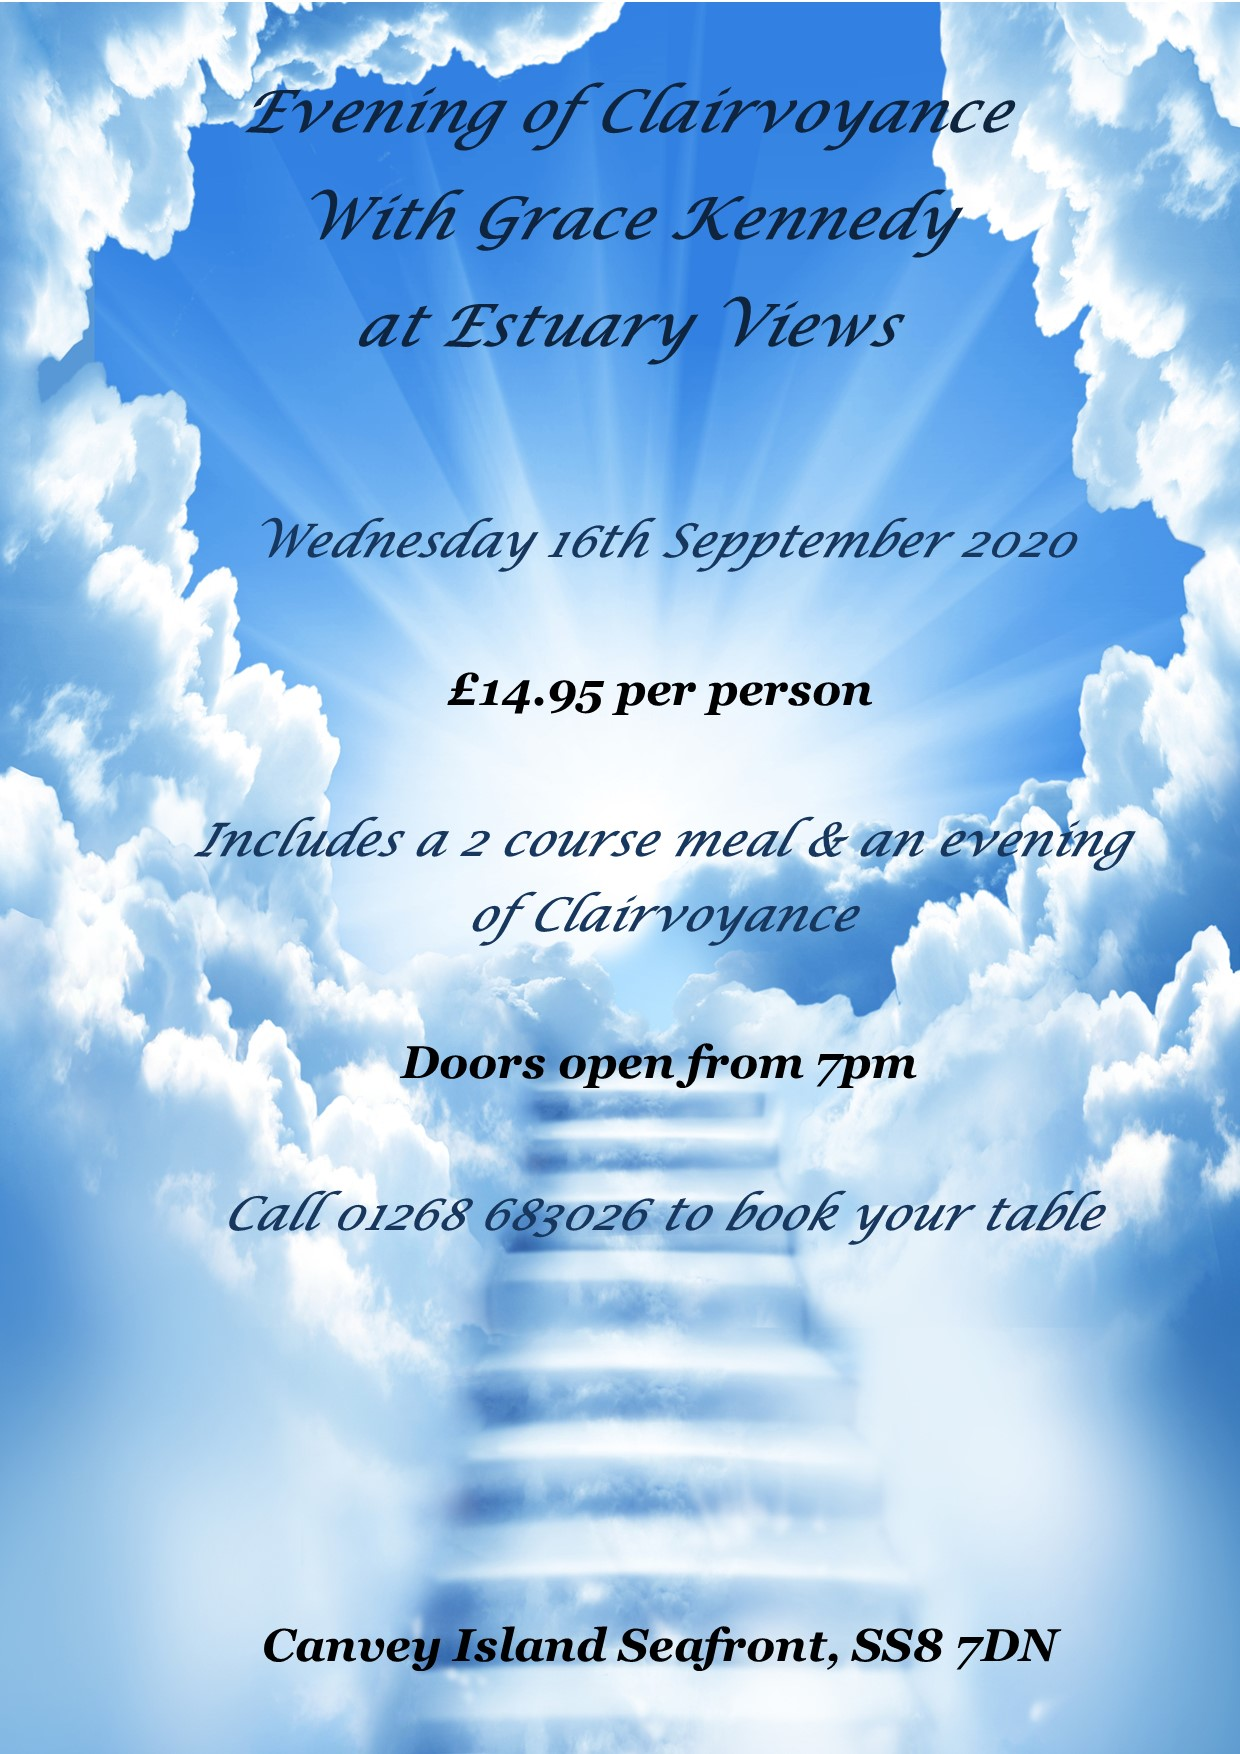 Evening of Clairvoyance with Grace Kennedy